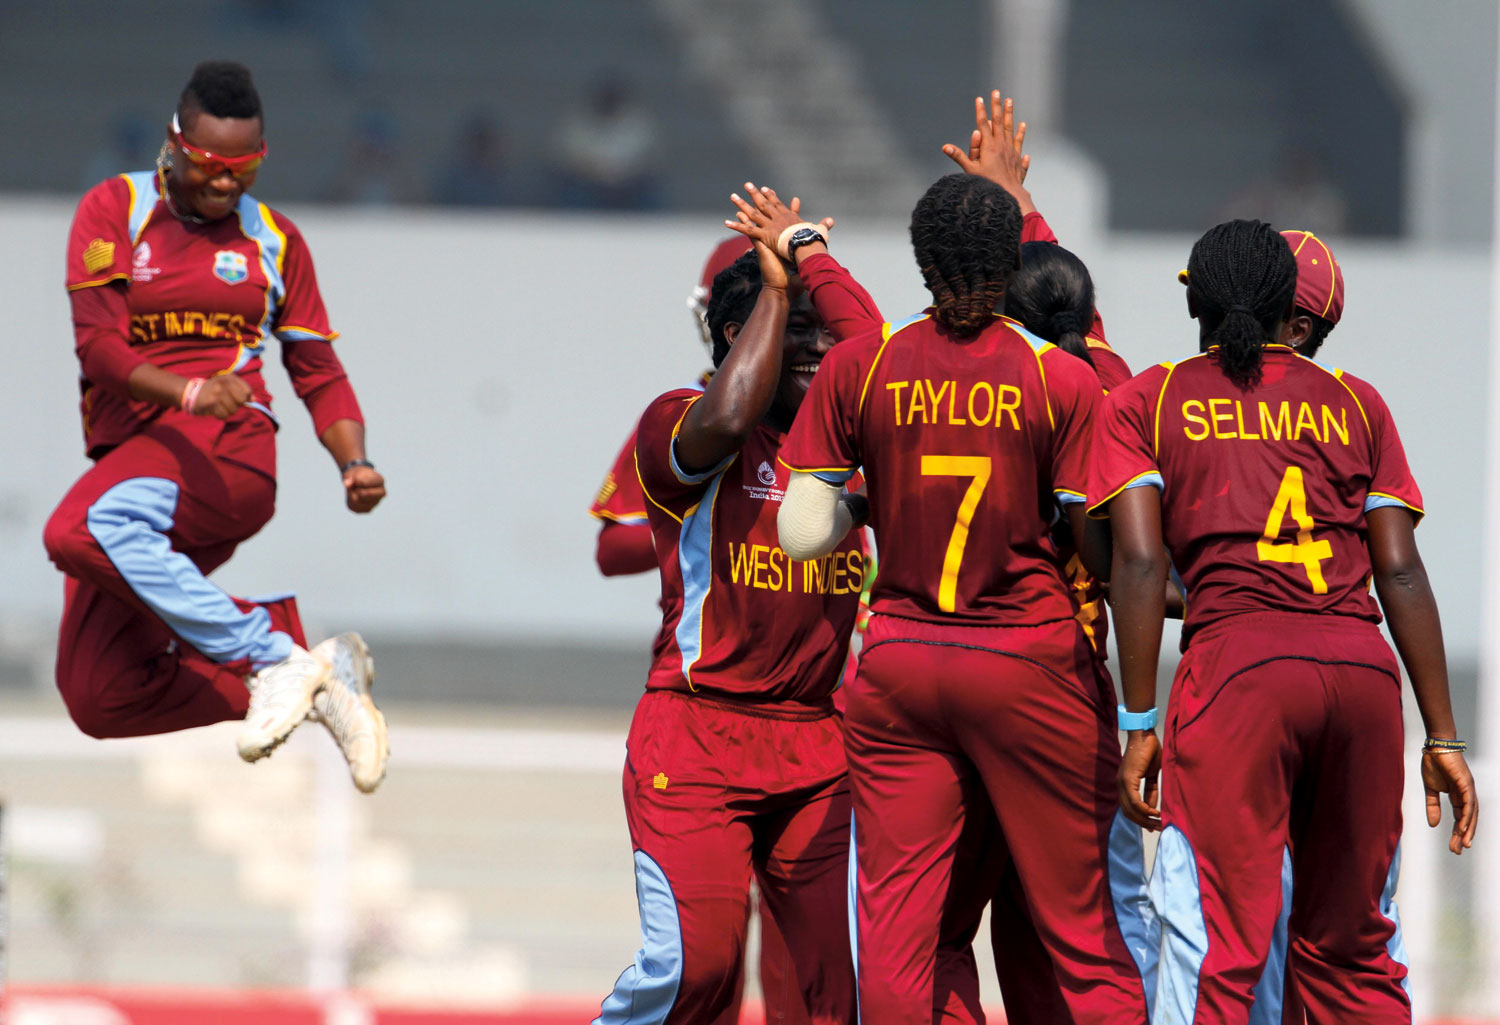 West Indies women's team players celebrate on the field. Photograph courtesy the West Indies Cricket Board